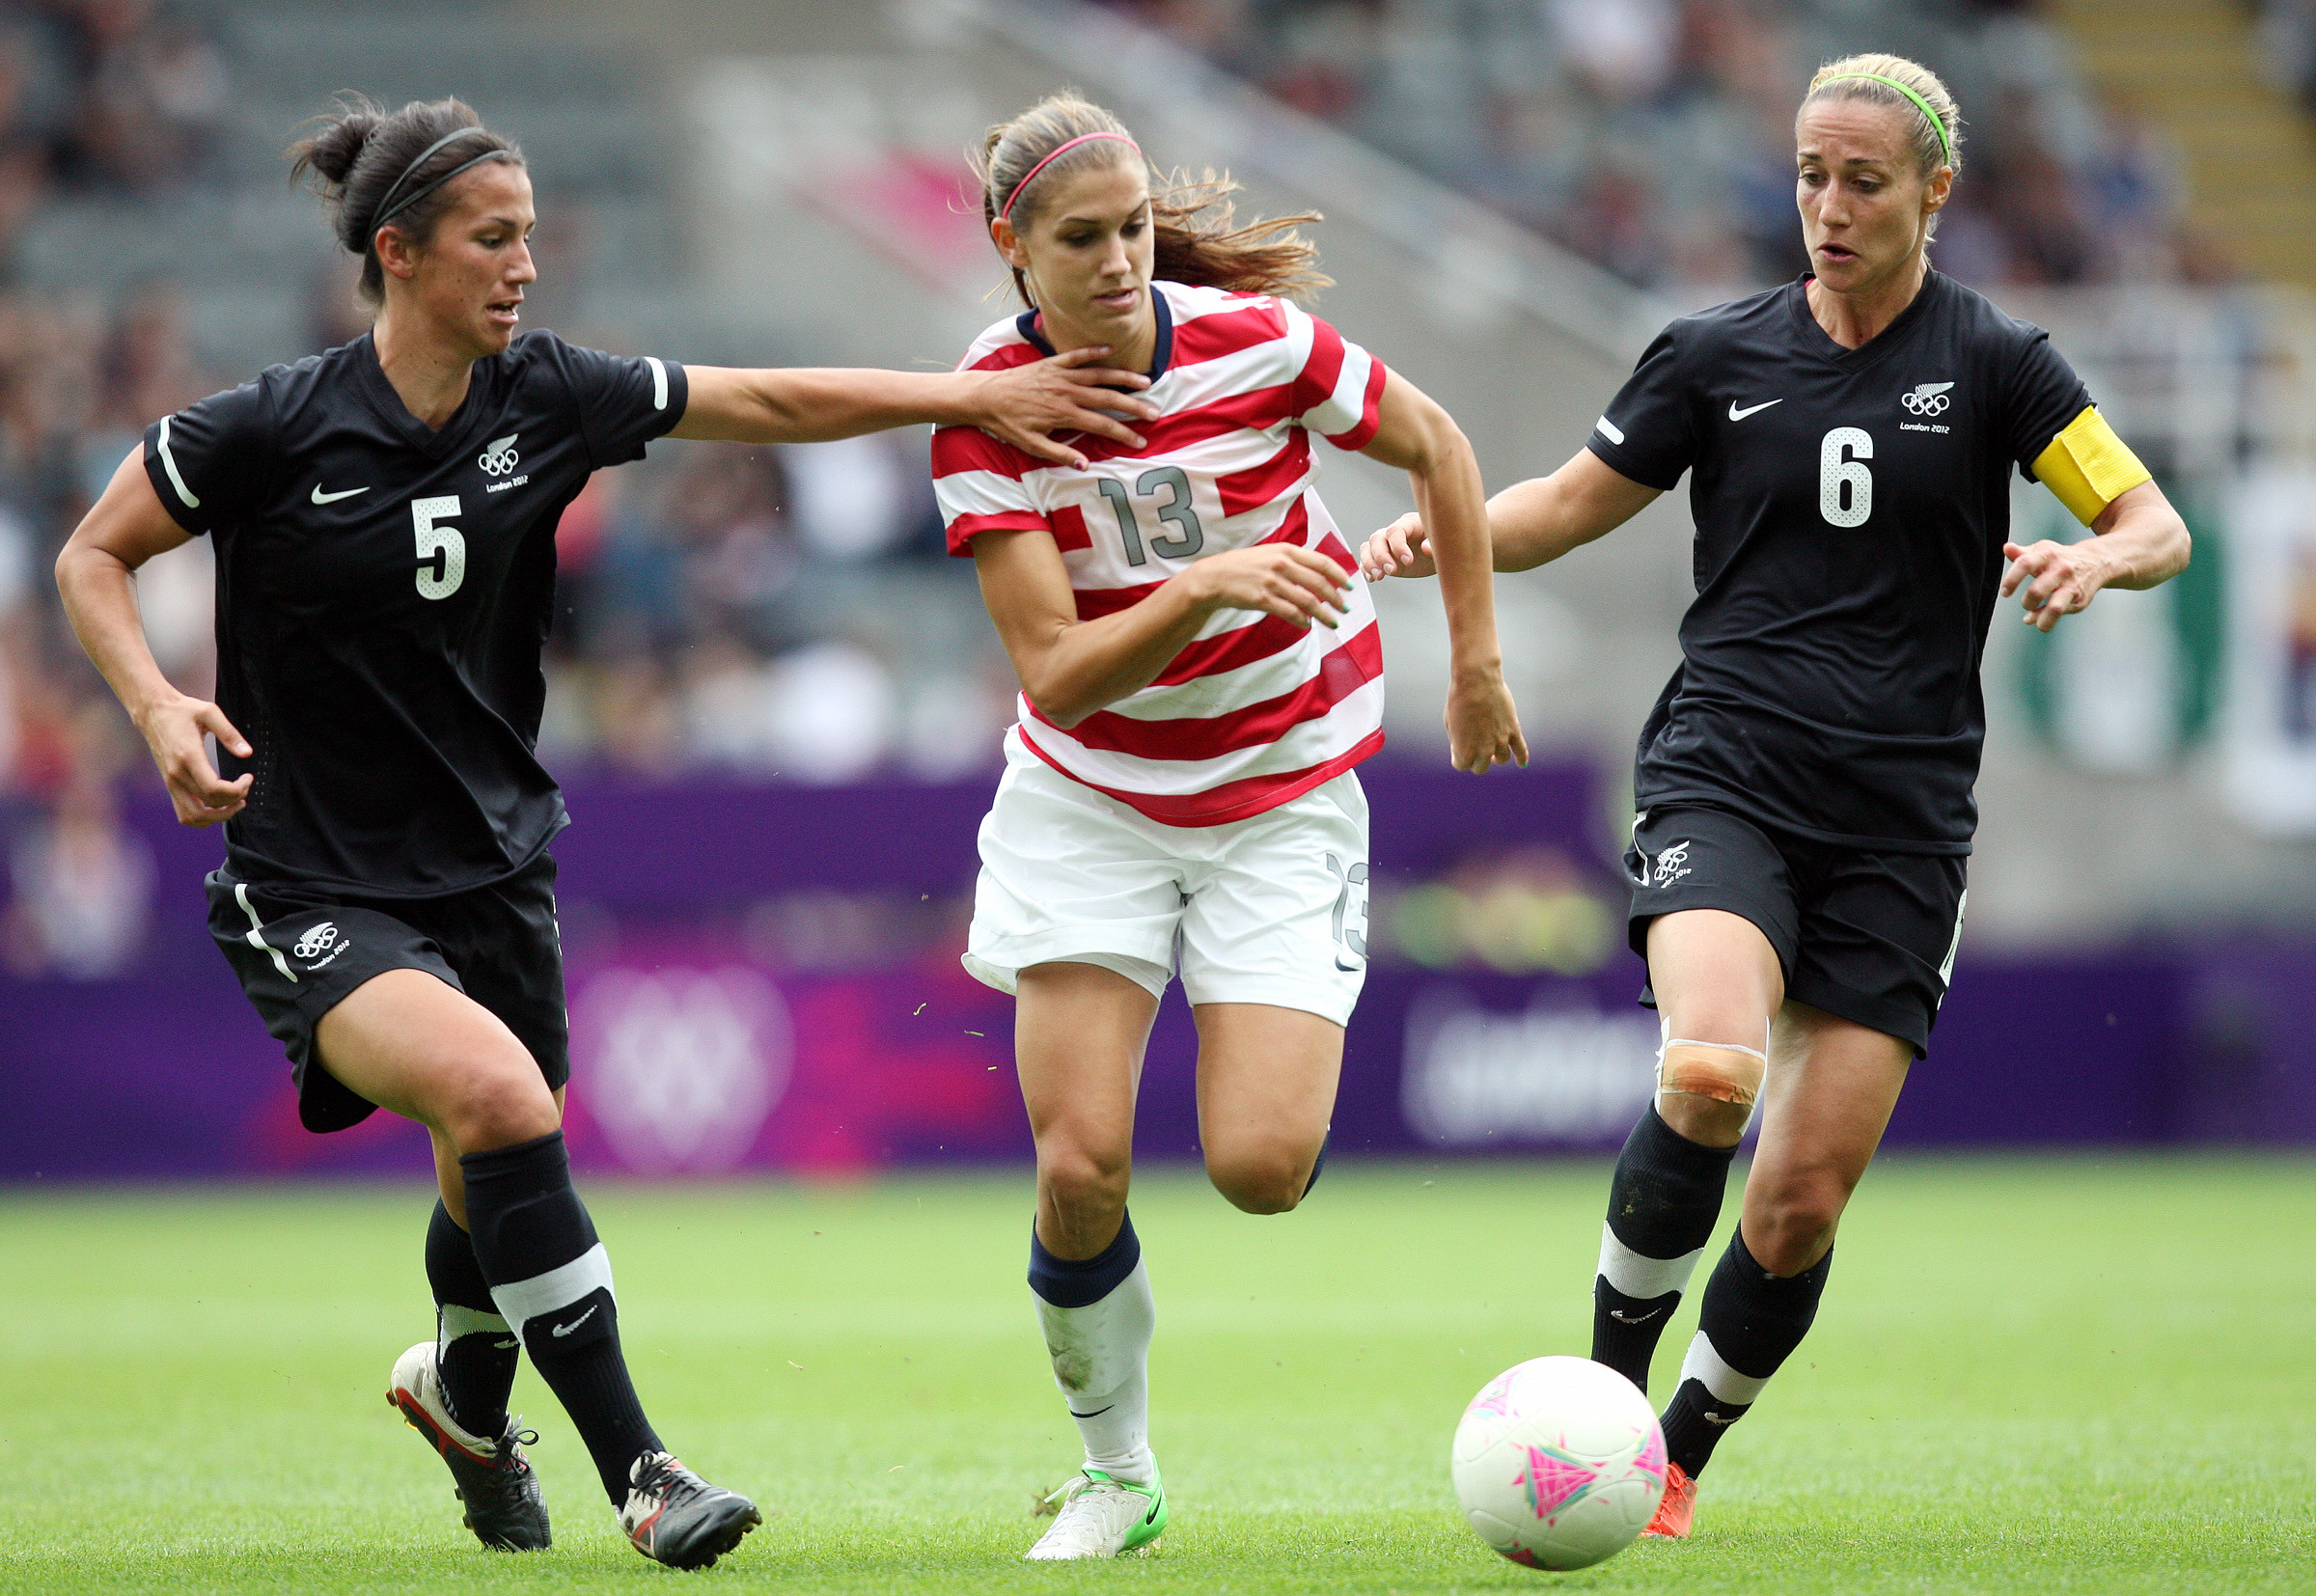 Gain a Competitive Edge With Women's Soccer Training Equipment